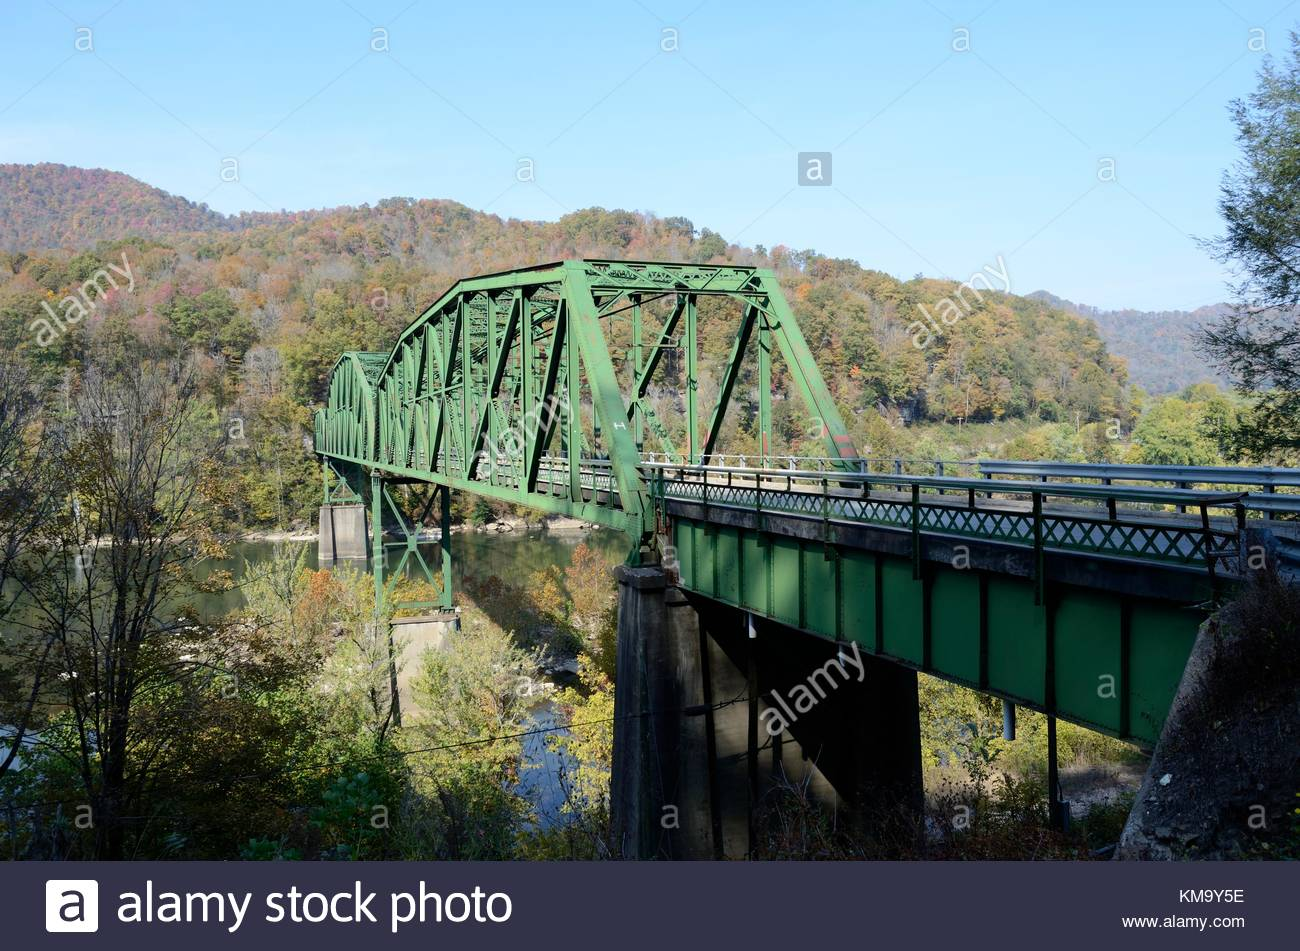 The Historic Kanawha Falls Bridge - a triple span Pennsylvania Truss Bridge over the Kanawha River in West Virginia. Stock Photo